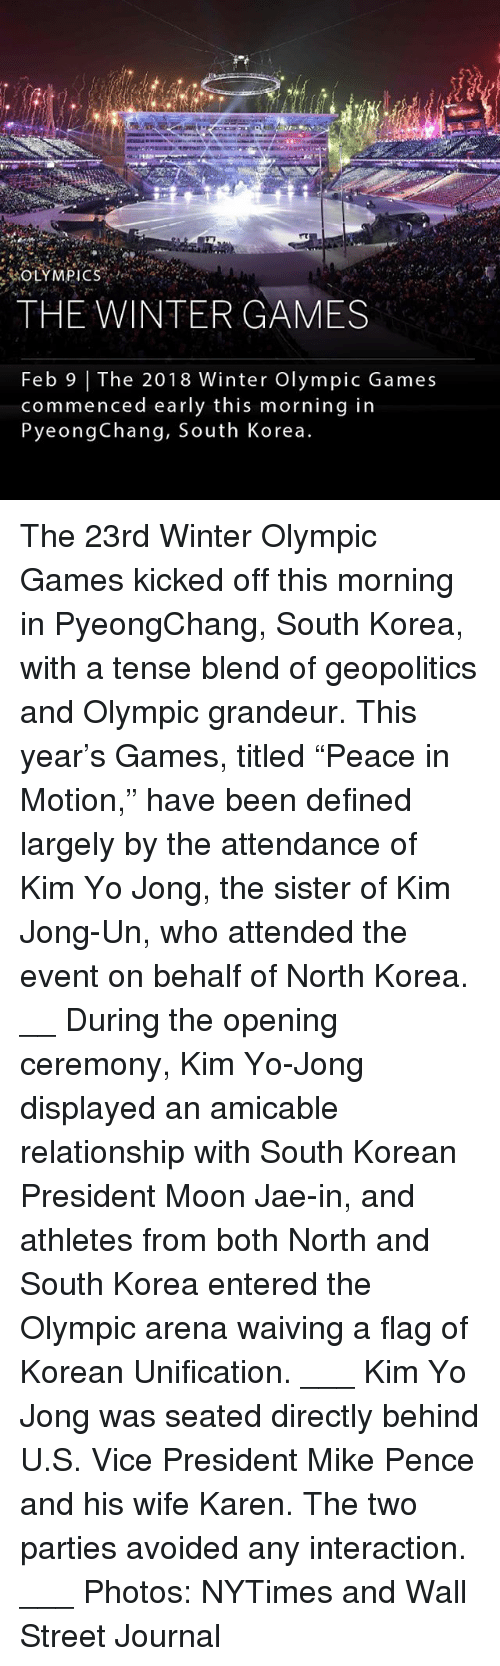 "Kim Jong-Un, Memes, and North Korea: THE WINTERGAMES  Feb 9 | The 2018 Winter Olympic Games  commenced early this morning in  PyeongChang, South Korea The 23rd Winter Olympic Games kicked off this morning in PyeongChang, South Korea, with a tense blend of geopolitics and Olympic grandeur. This year's Games, titled ""Peace in Motion,"" have been defined largely by the attendance of Kim Yo Jong, the sister of Kim Jong-Un, who attended the event on behalf of North Korea. __ During the opening ceremony, Kim Yo-Jong displayed an amicable relationship with South Korean President Moon Jae-in, and athletes from both North and South Korea entered the Olympic arena waiving a flag of Korean Unification. ___ Kim Yo Jong was seated directly behind U.S. Vice President Mike Pence and his wife Karen. The two parties avoided any interaction. ___ Photos: NYTimes and Wall Street Journal"